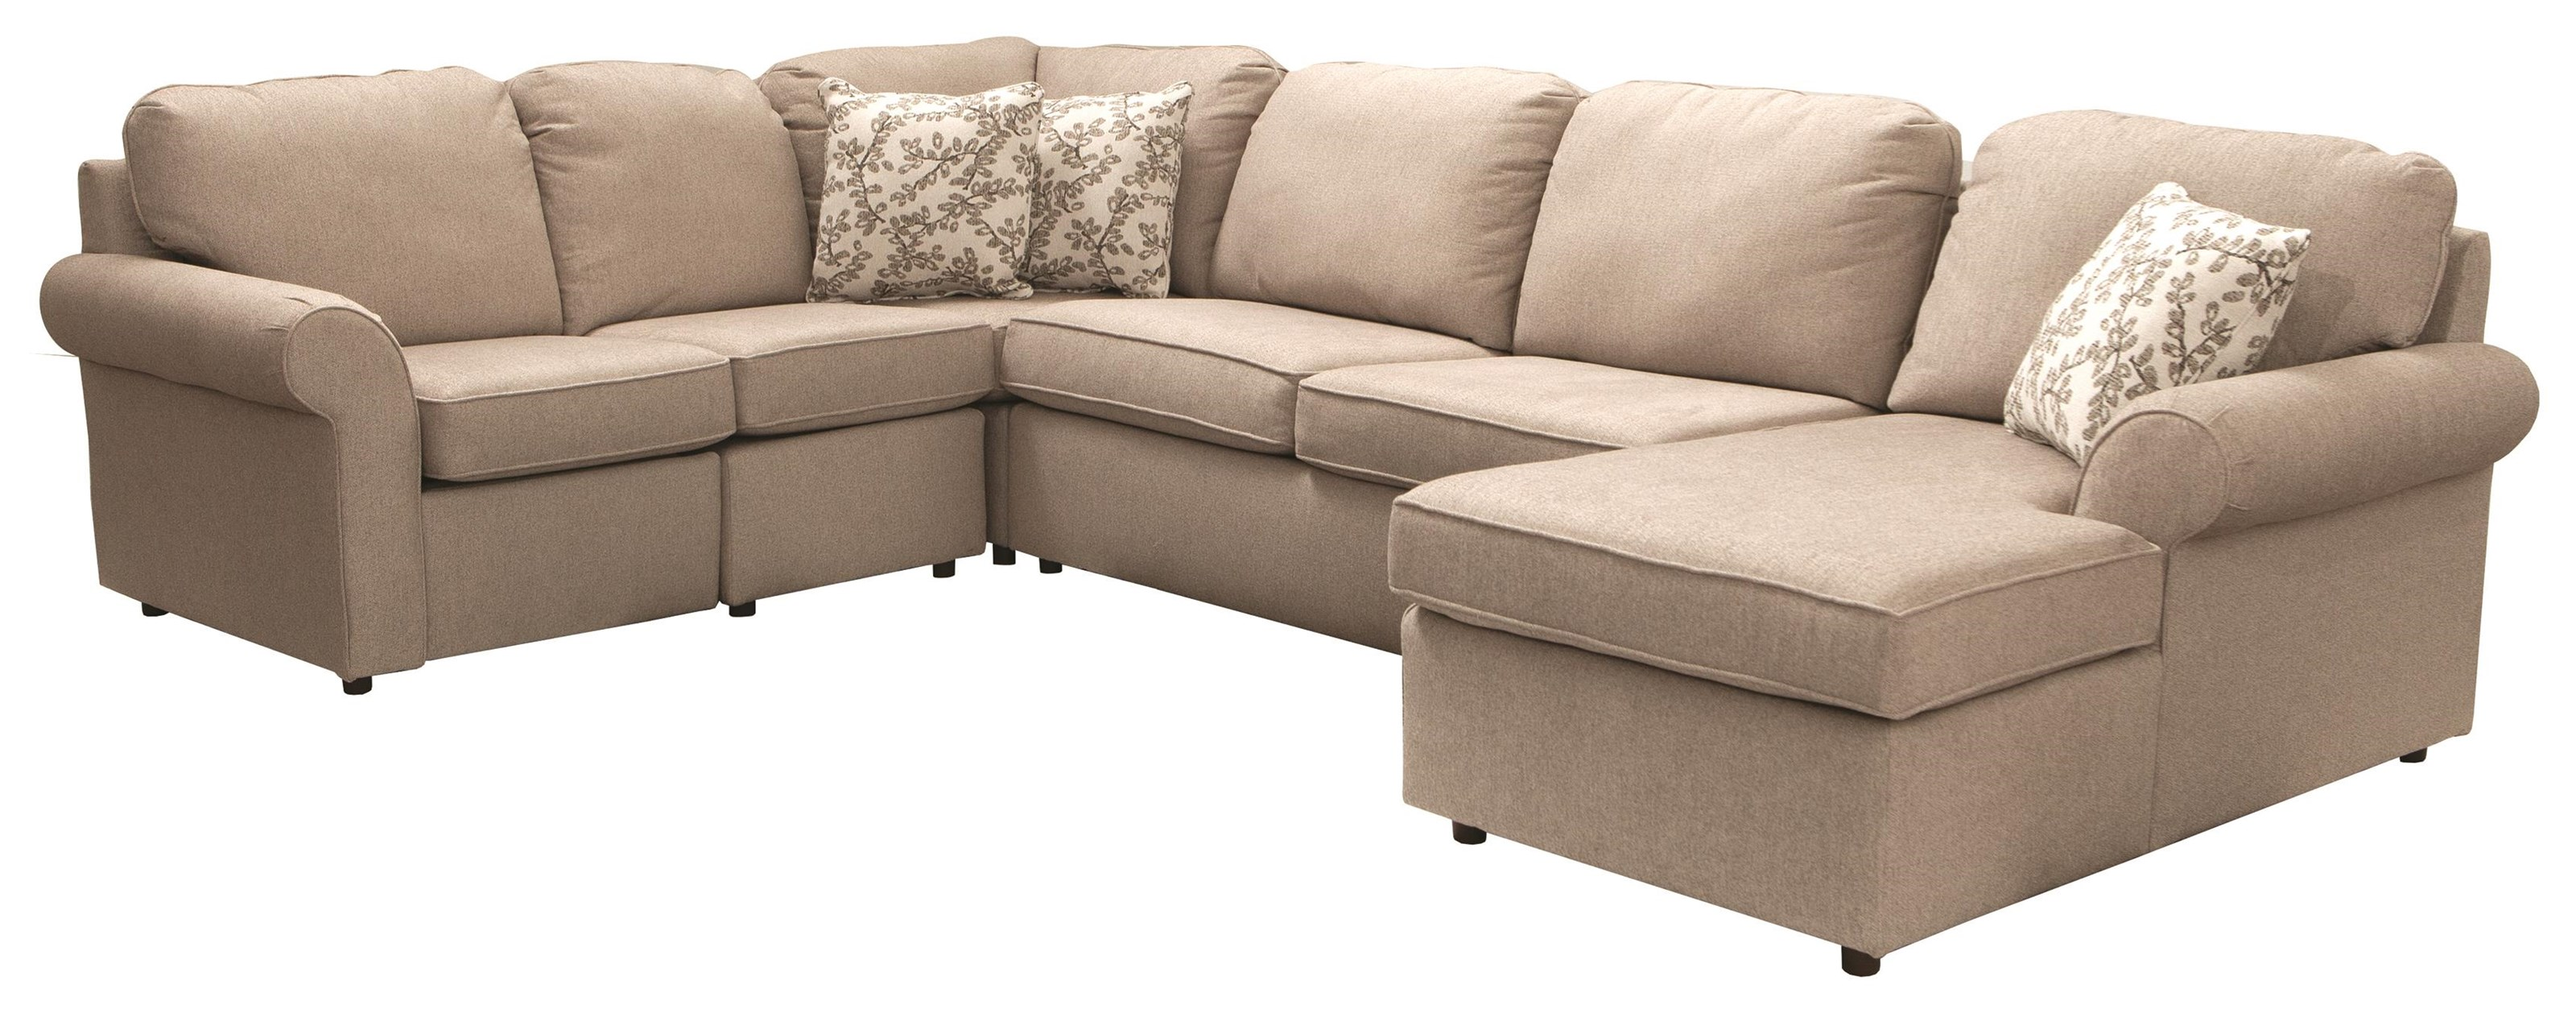 Malibu 4 Piece Sectional With Power Reclining Loves by England at Darvin Furniture